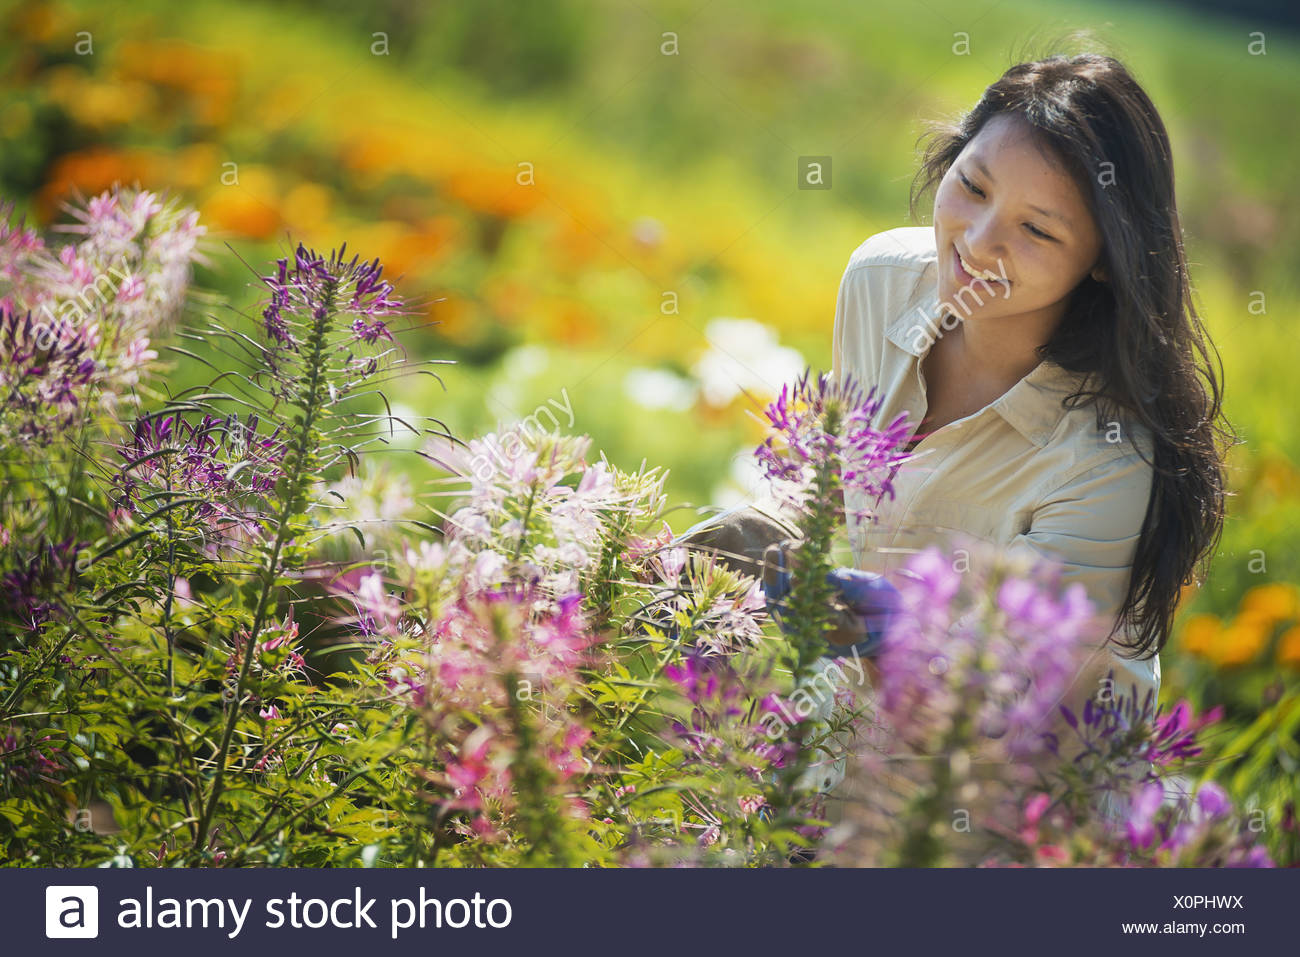 New York state USA young woman in garden surrounding by flowers - Stock Image